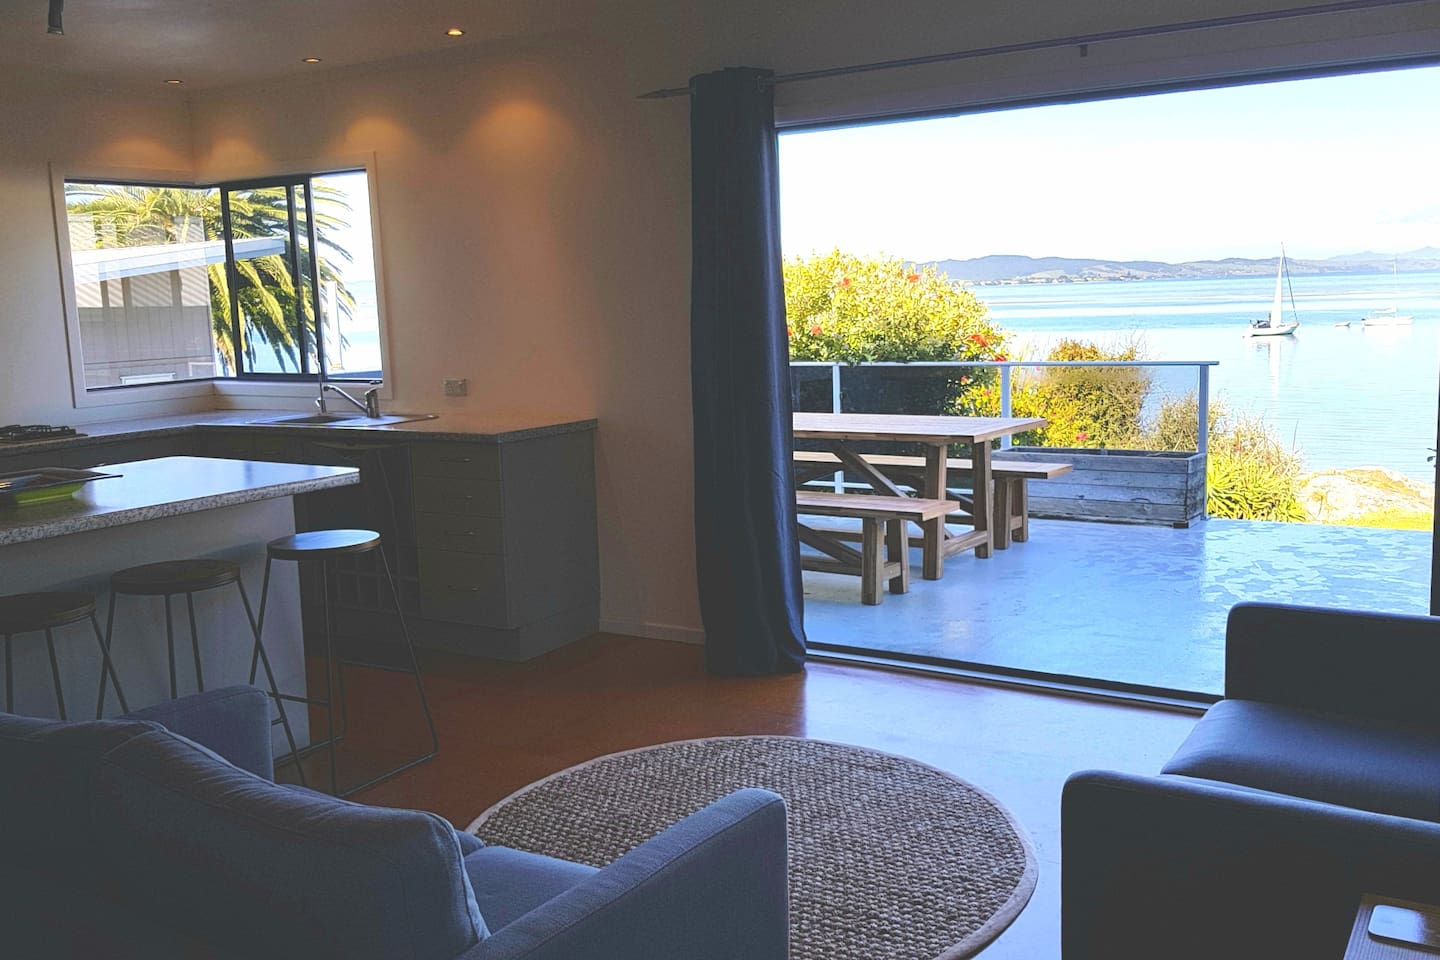 The living area opens onto the deck by a large bifold door. Look at that view!